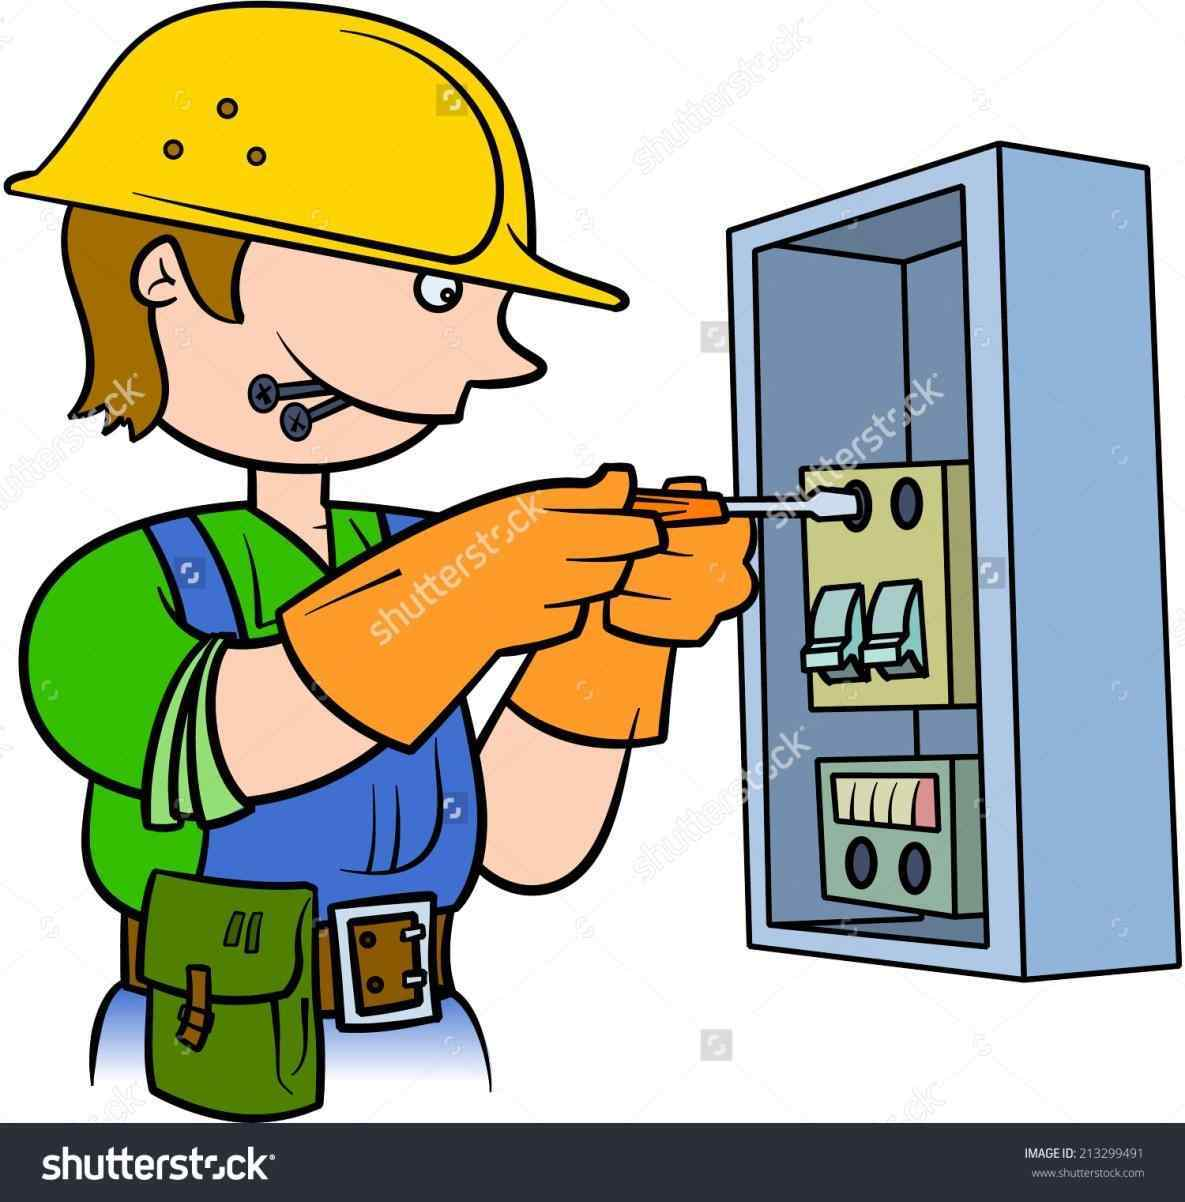 Silhouette at getdrawings com. Electrician clipart